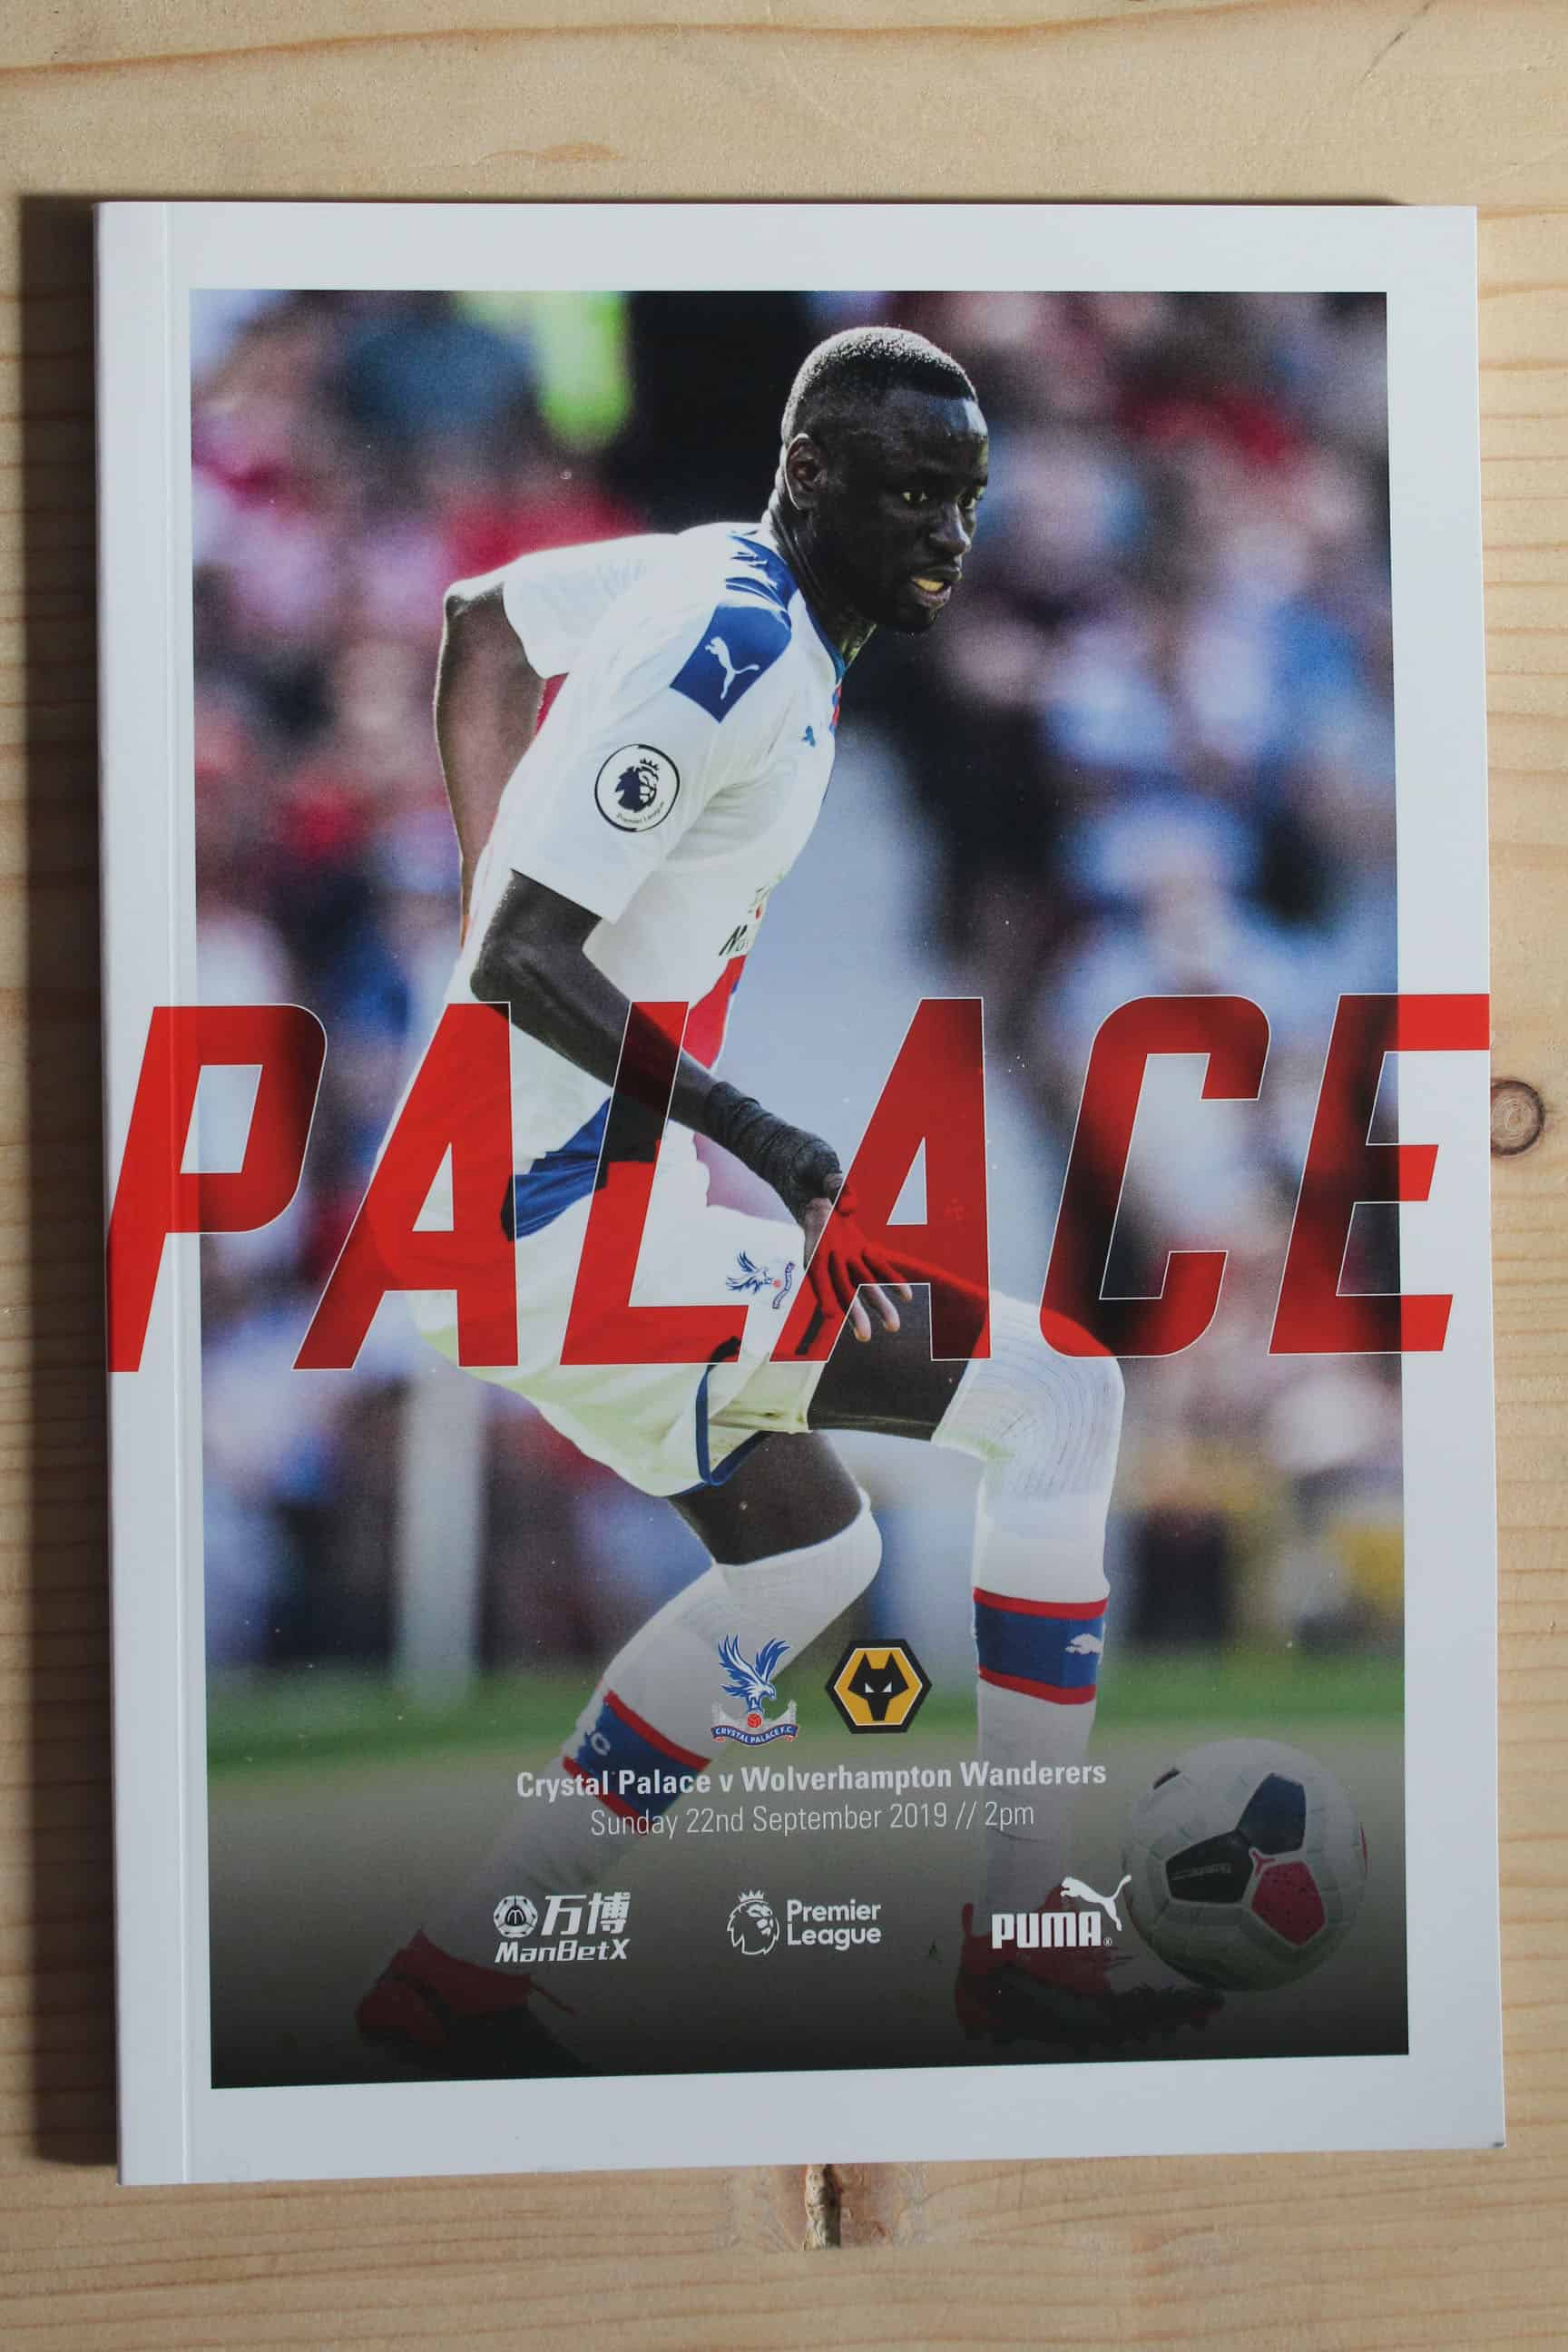 Crystal Palace FC v Wolverhampton Wanderers FC